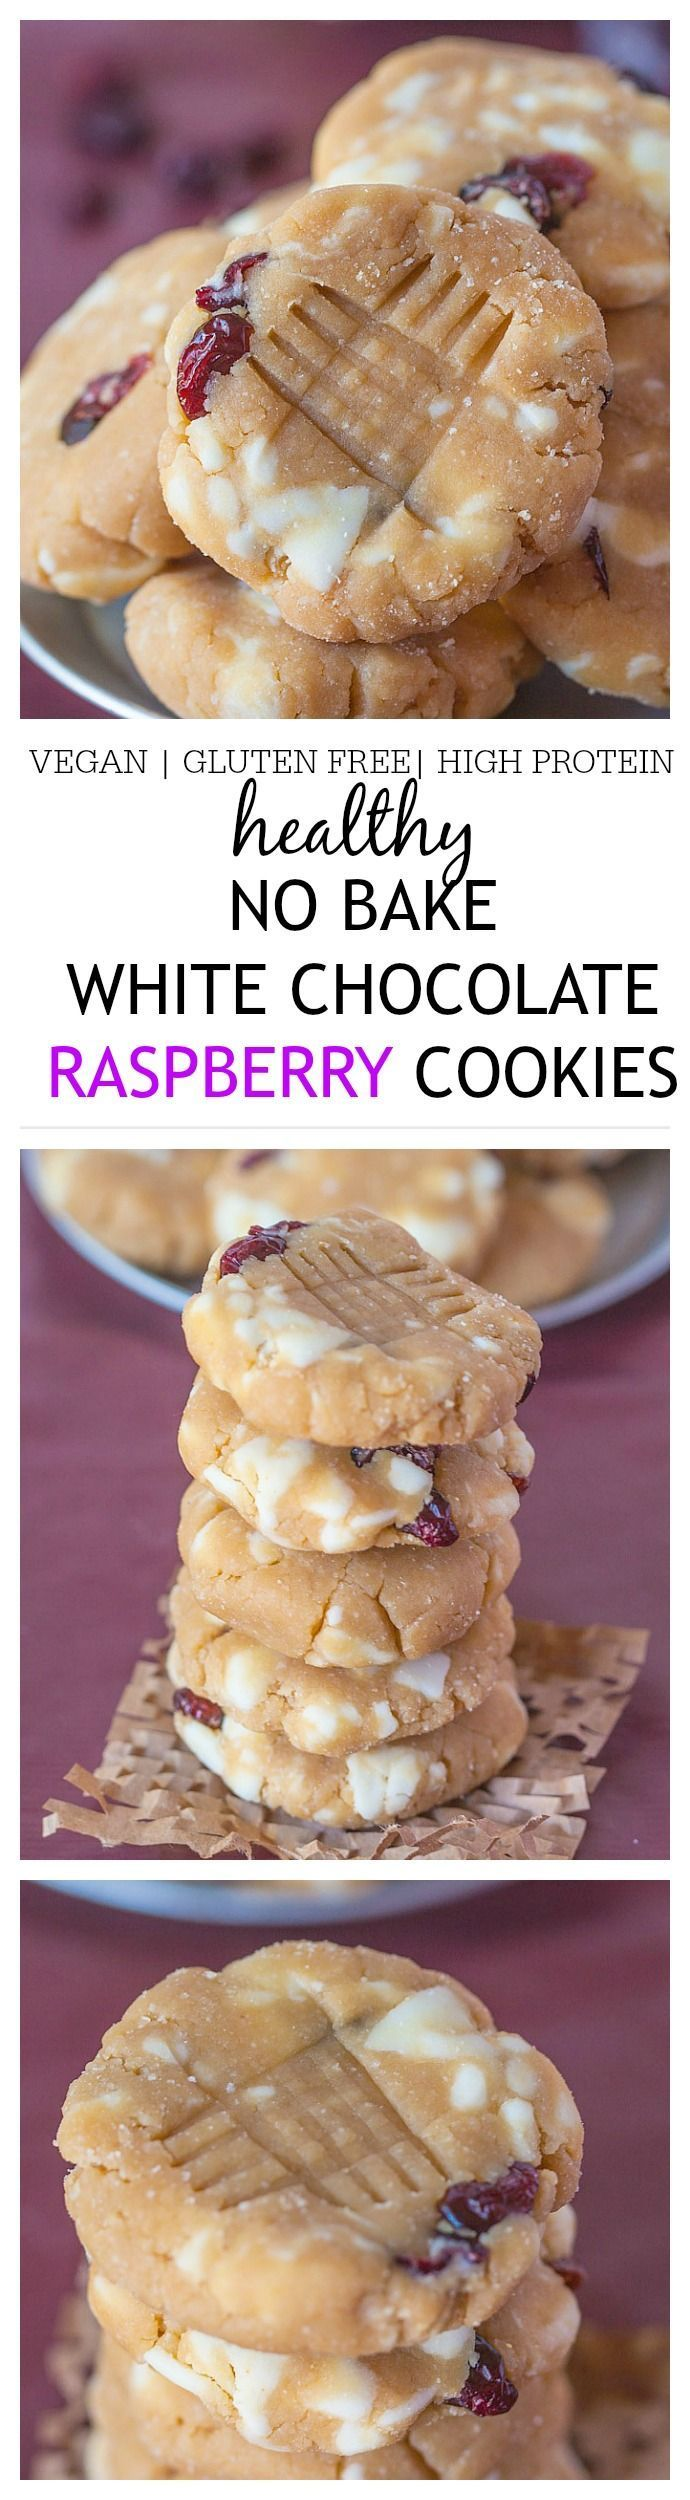 Healthy No Bake White Chocolate Raspberry Protein Cookies. If you go in for sports you need protein in your meal. Let's prepare cookies with proteins. You don't' need to bake them, just combine ingredients, microwave and refrigerate. Goodies are ready to renew your energy level. Be ready to feel extra portion of strength!